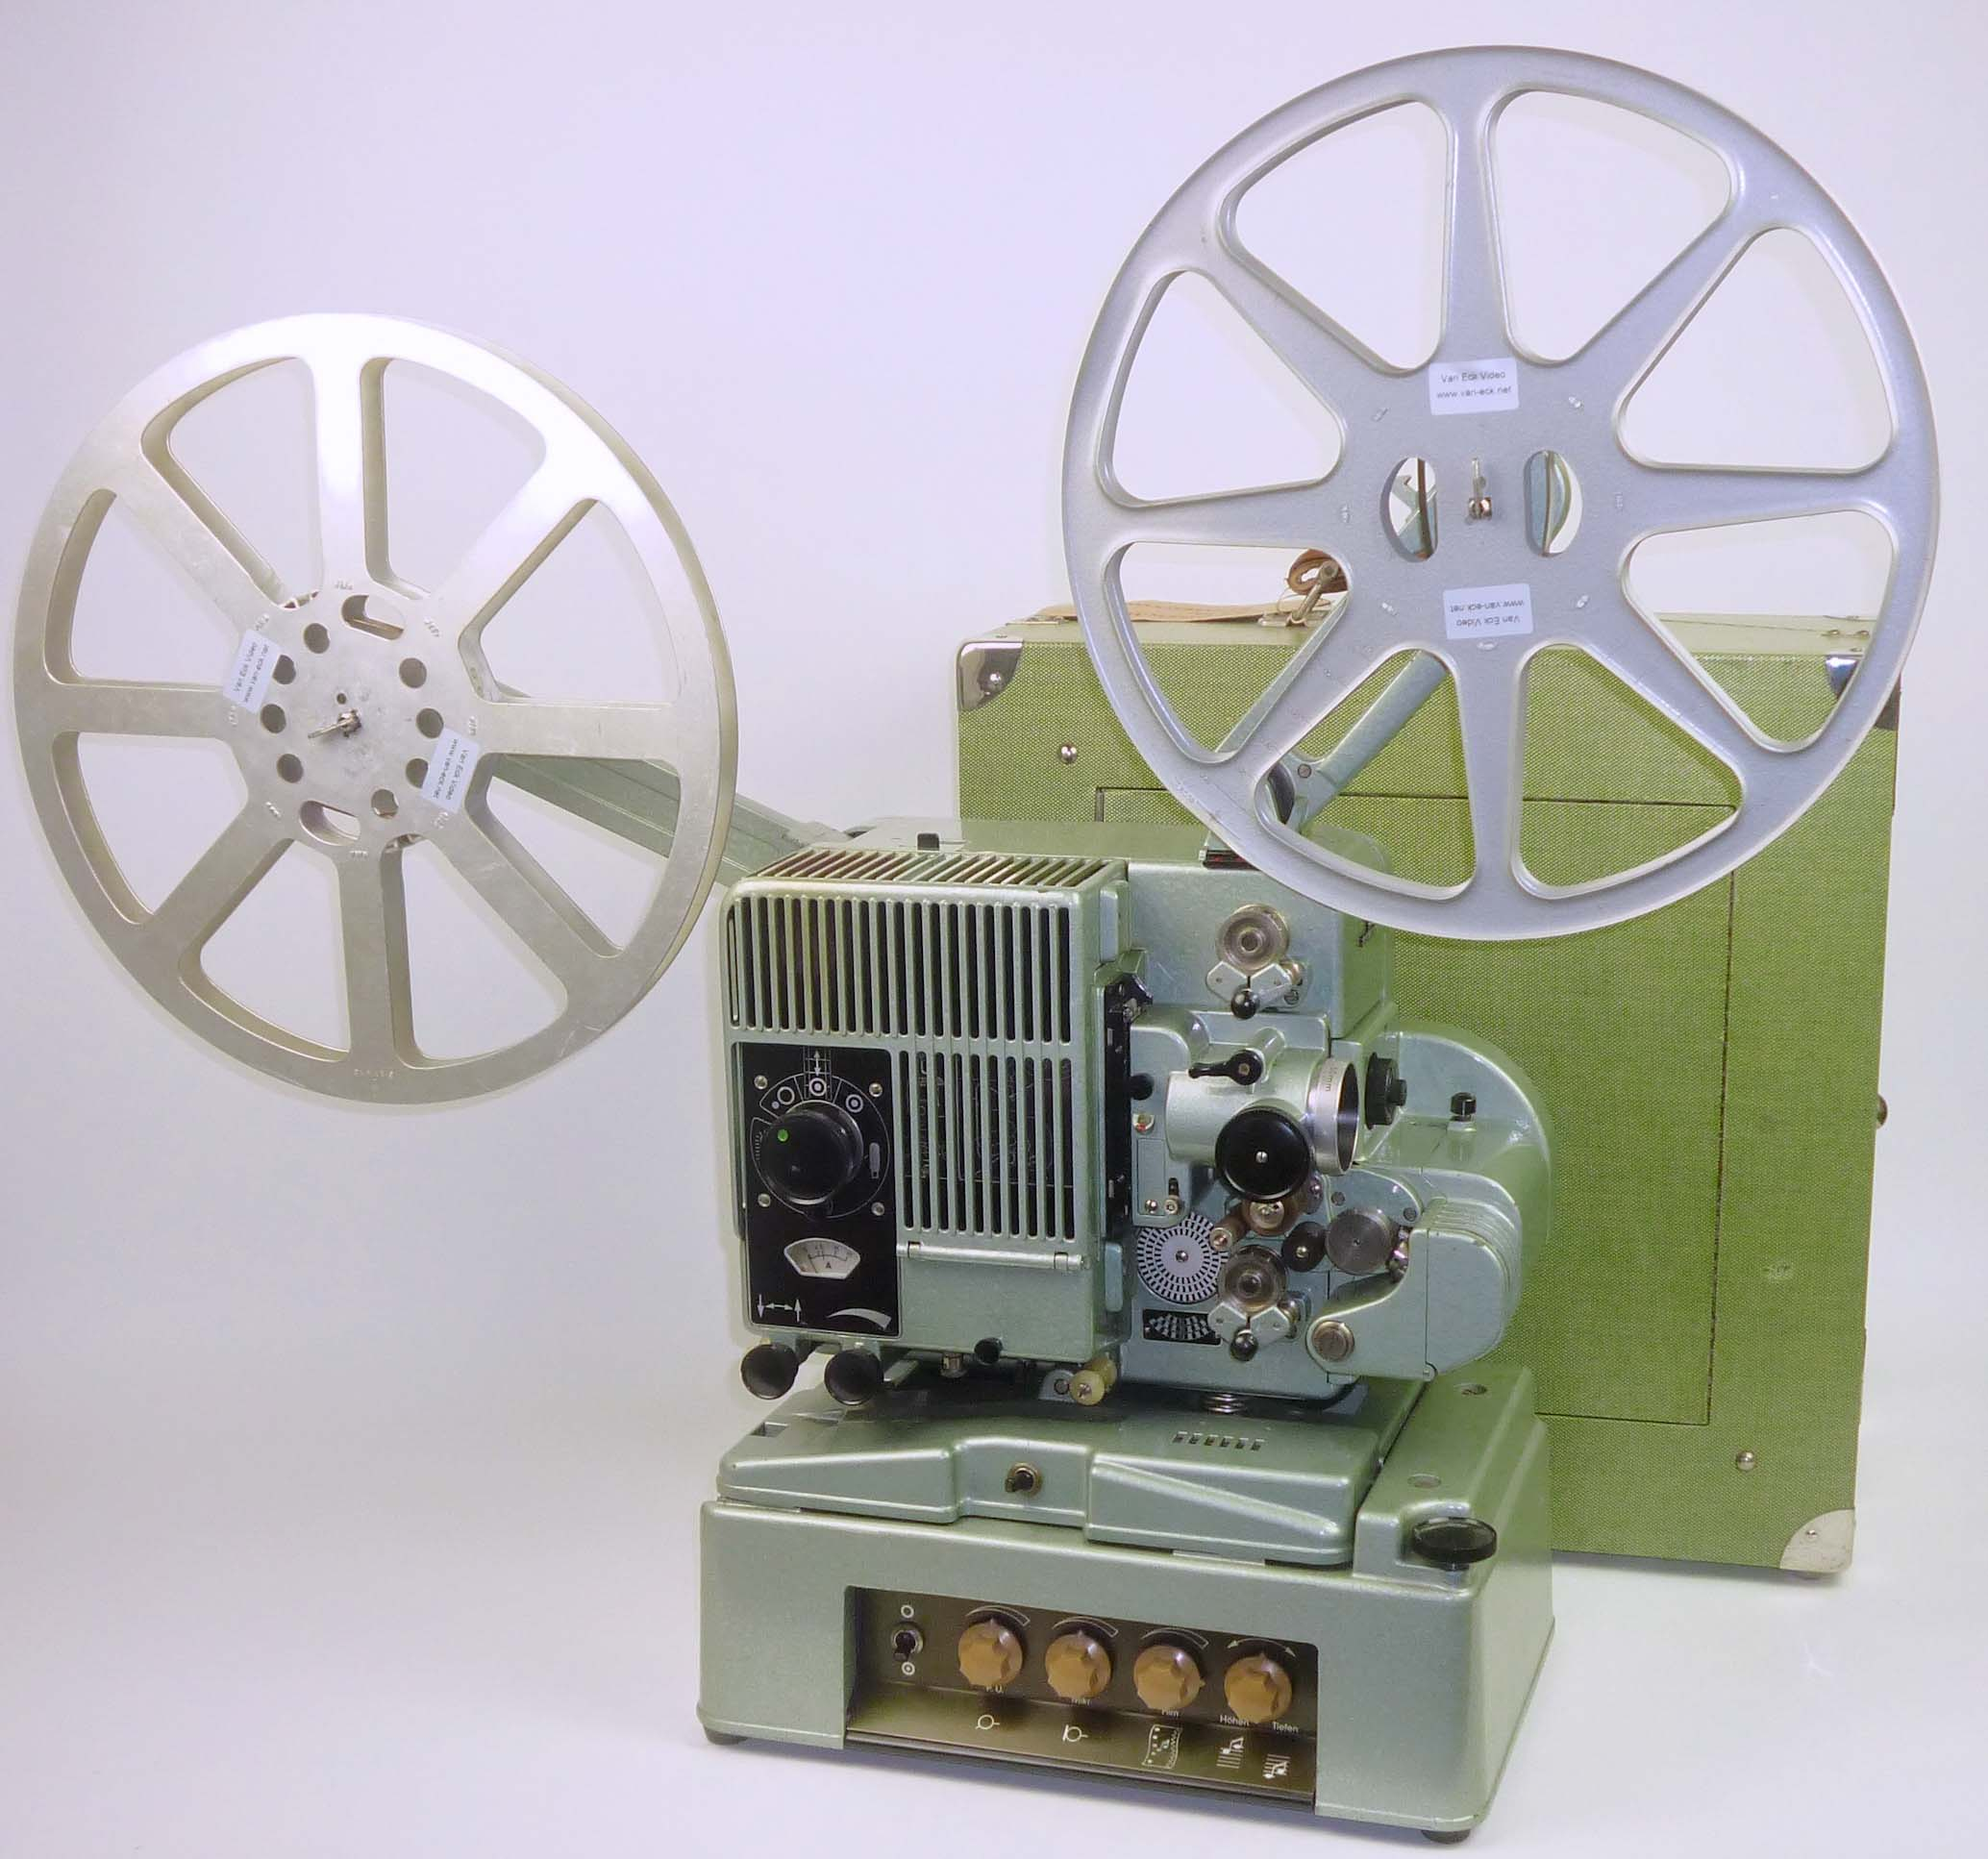 Siemens 2000, Film Projectors - Spare Parts and Information